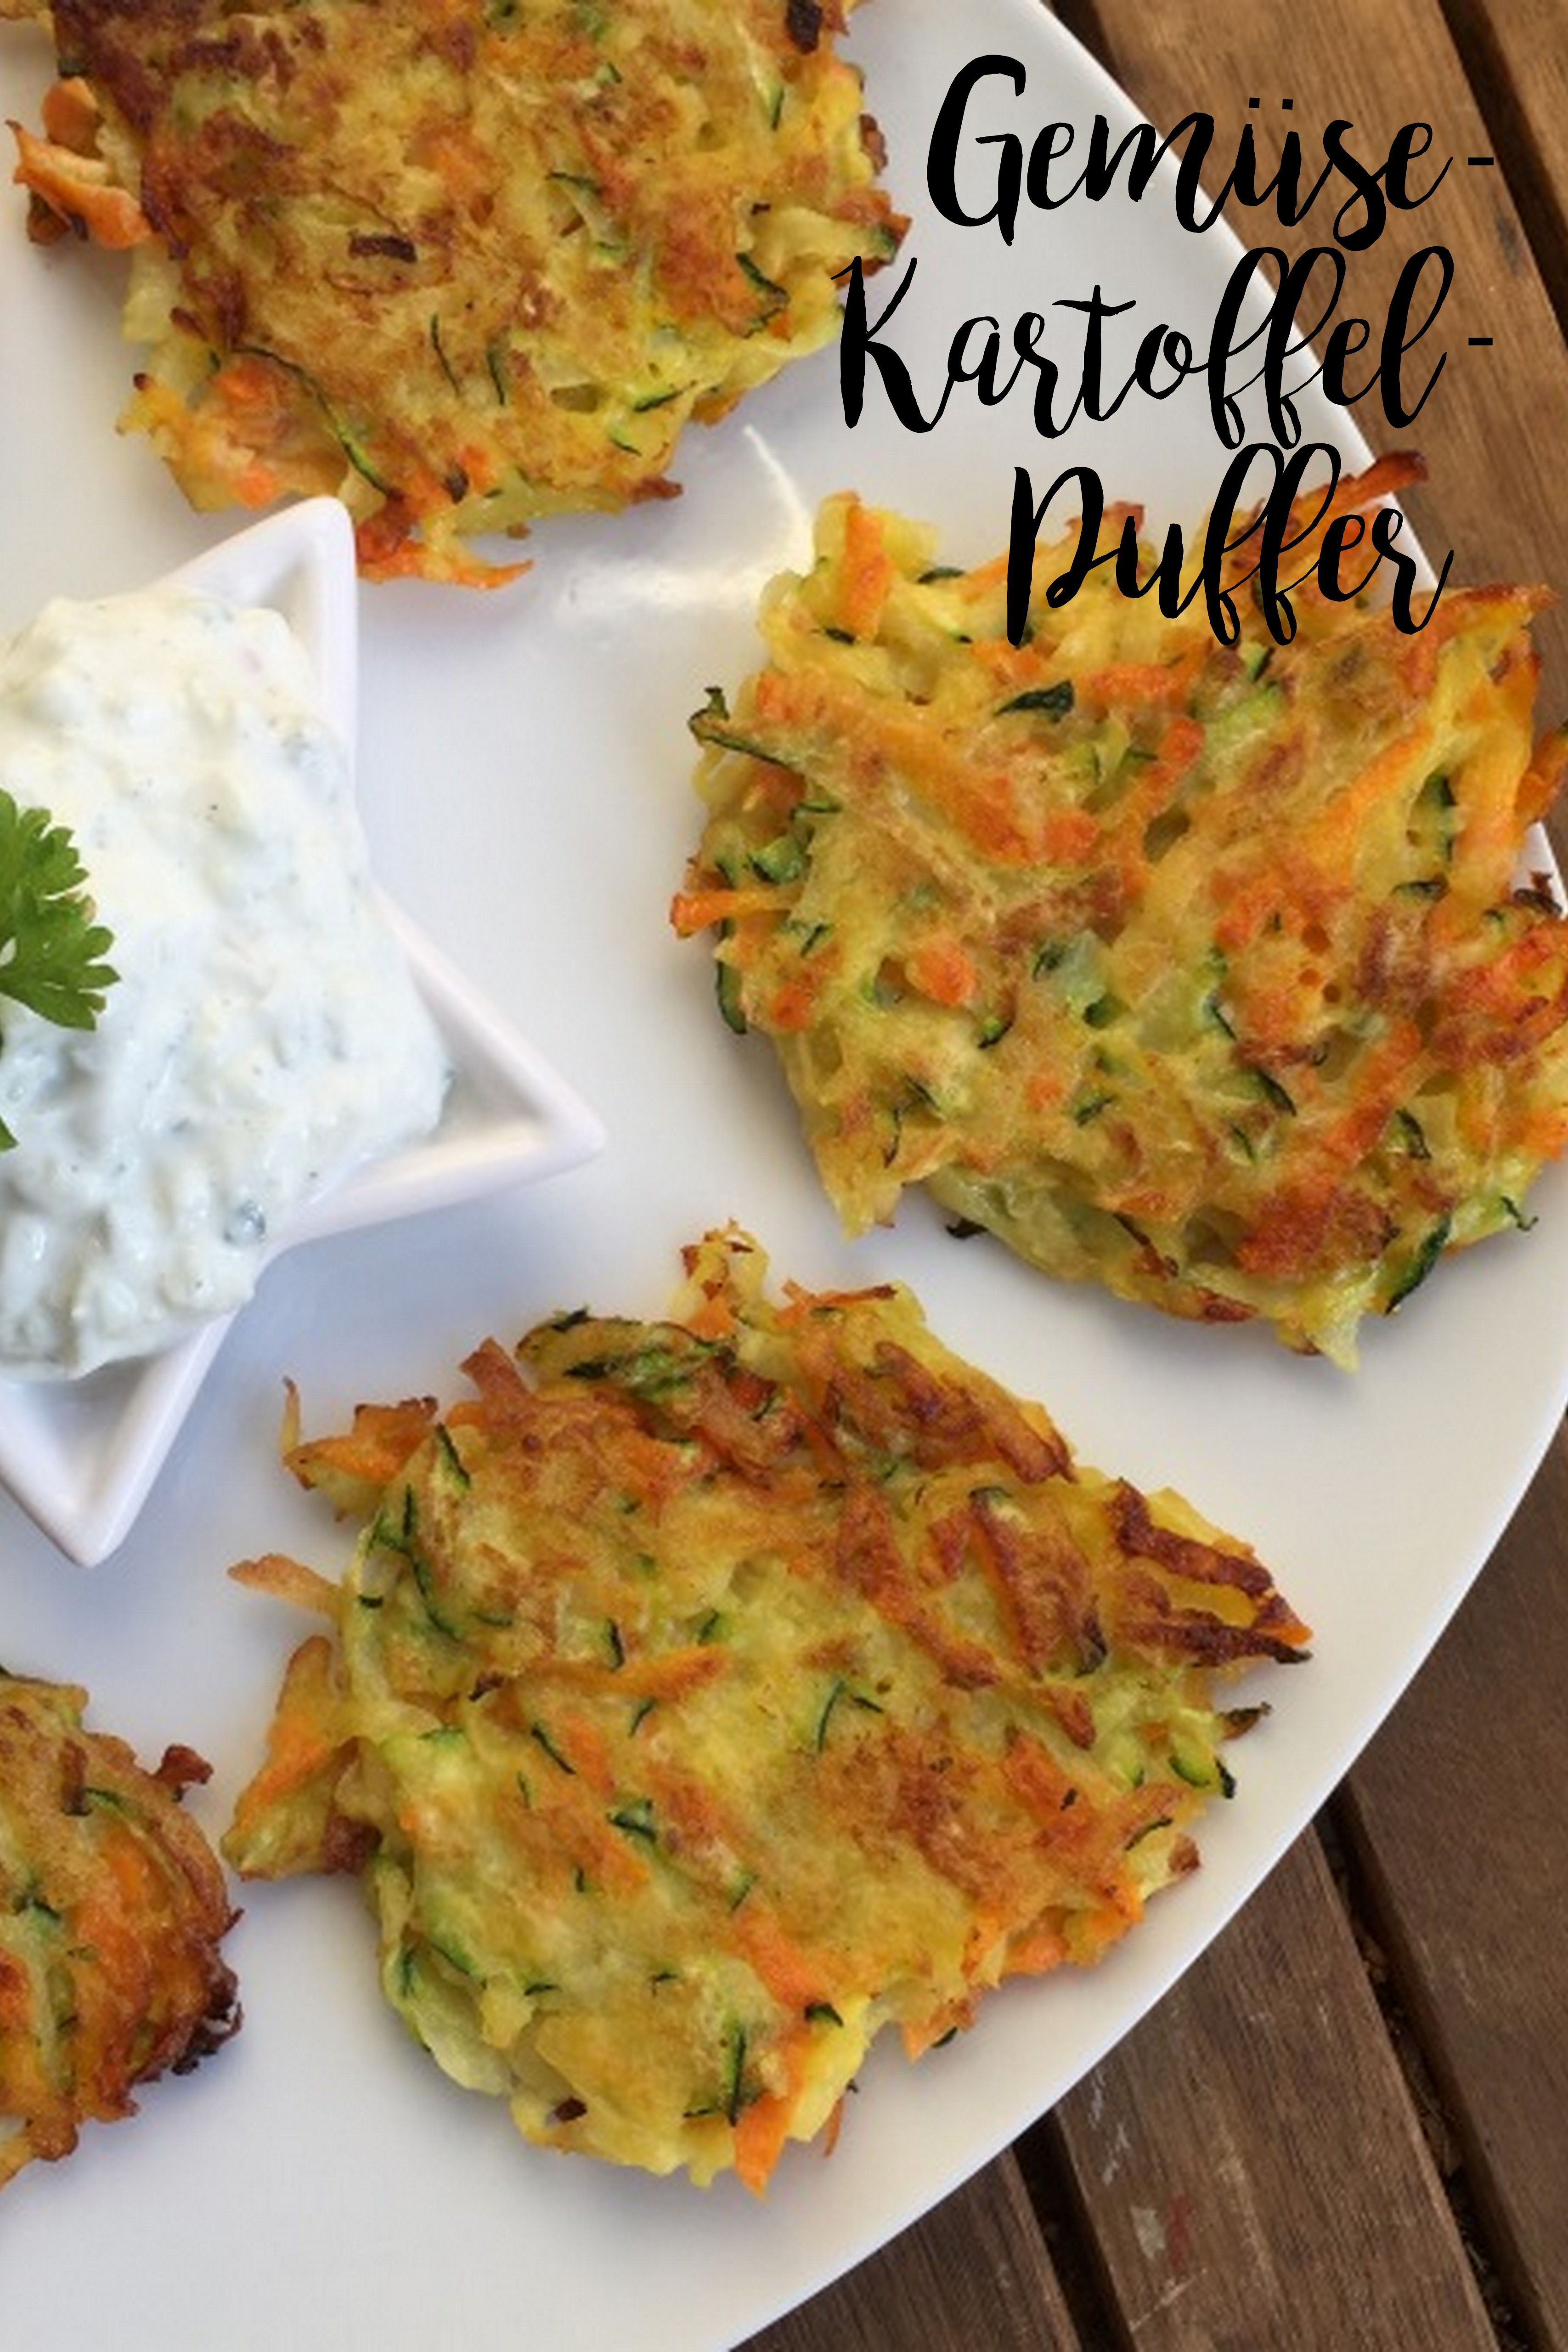 Photo of Vegetables and potato cakes